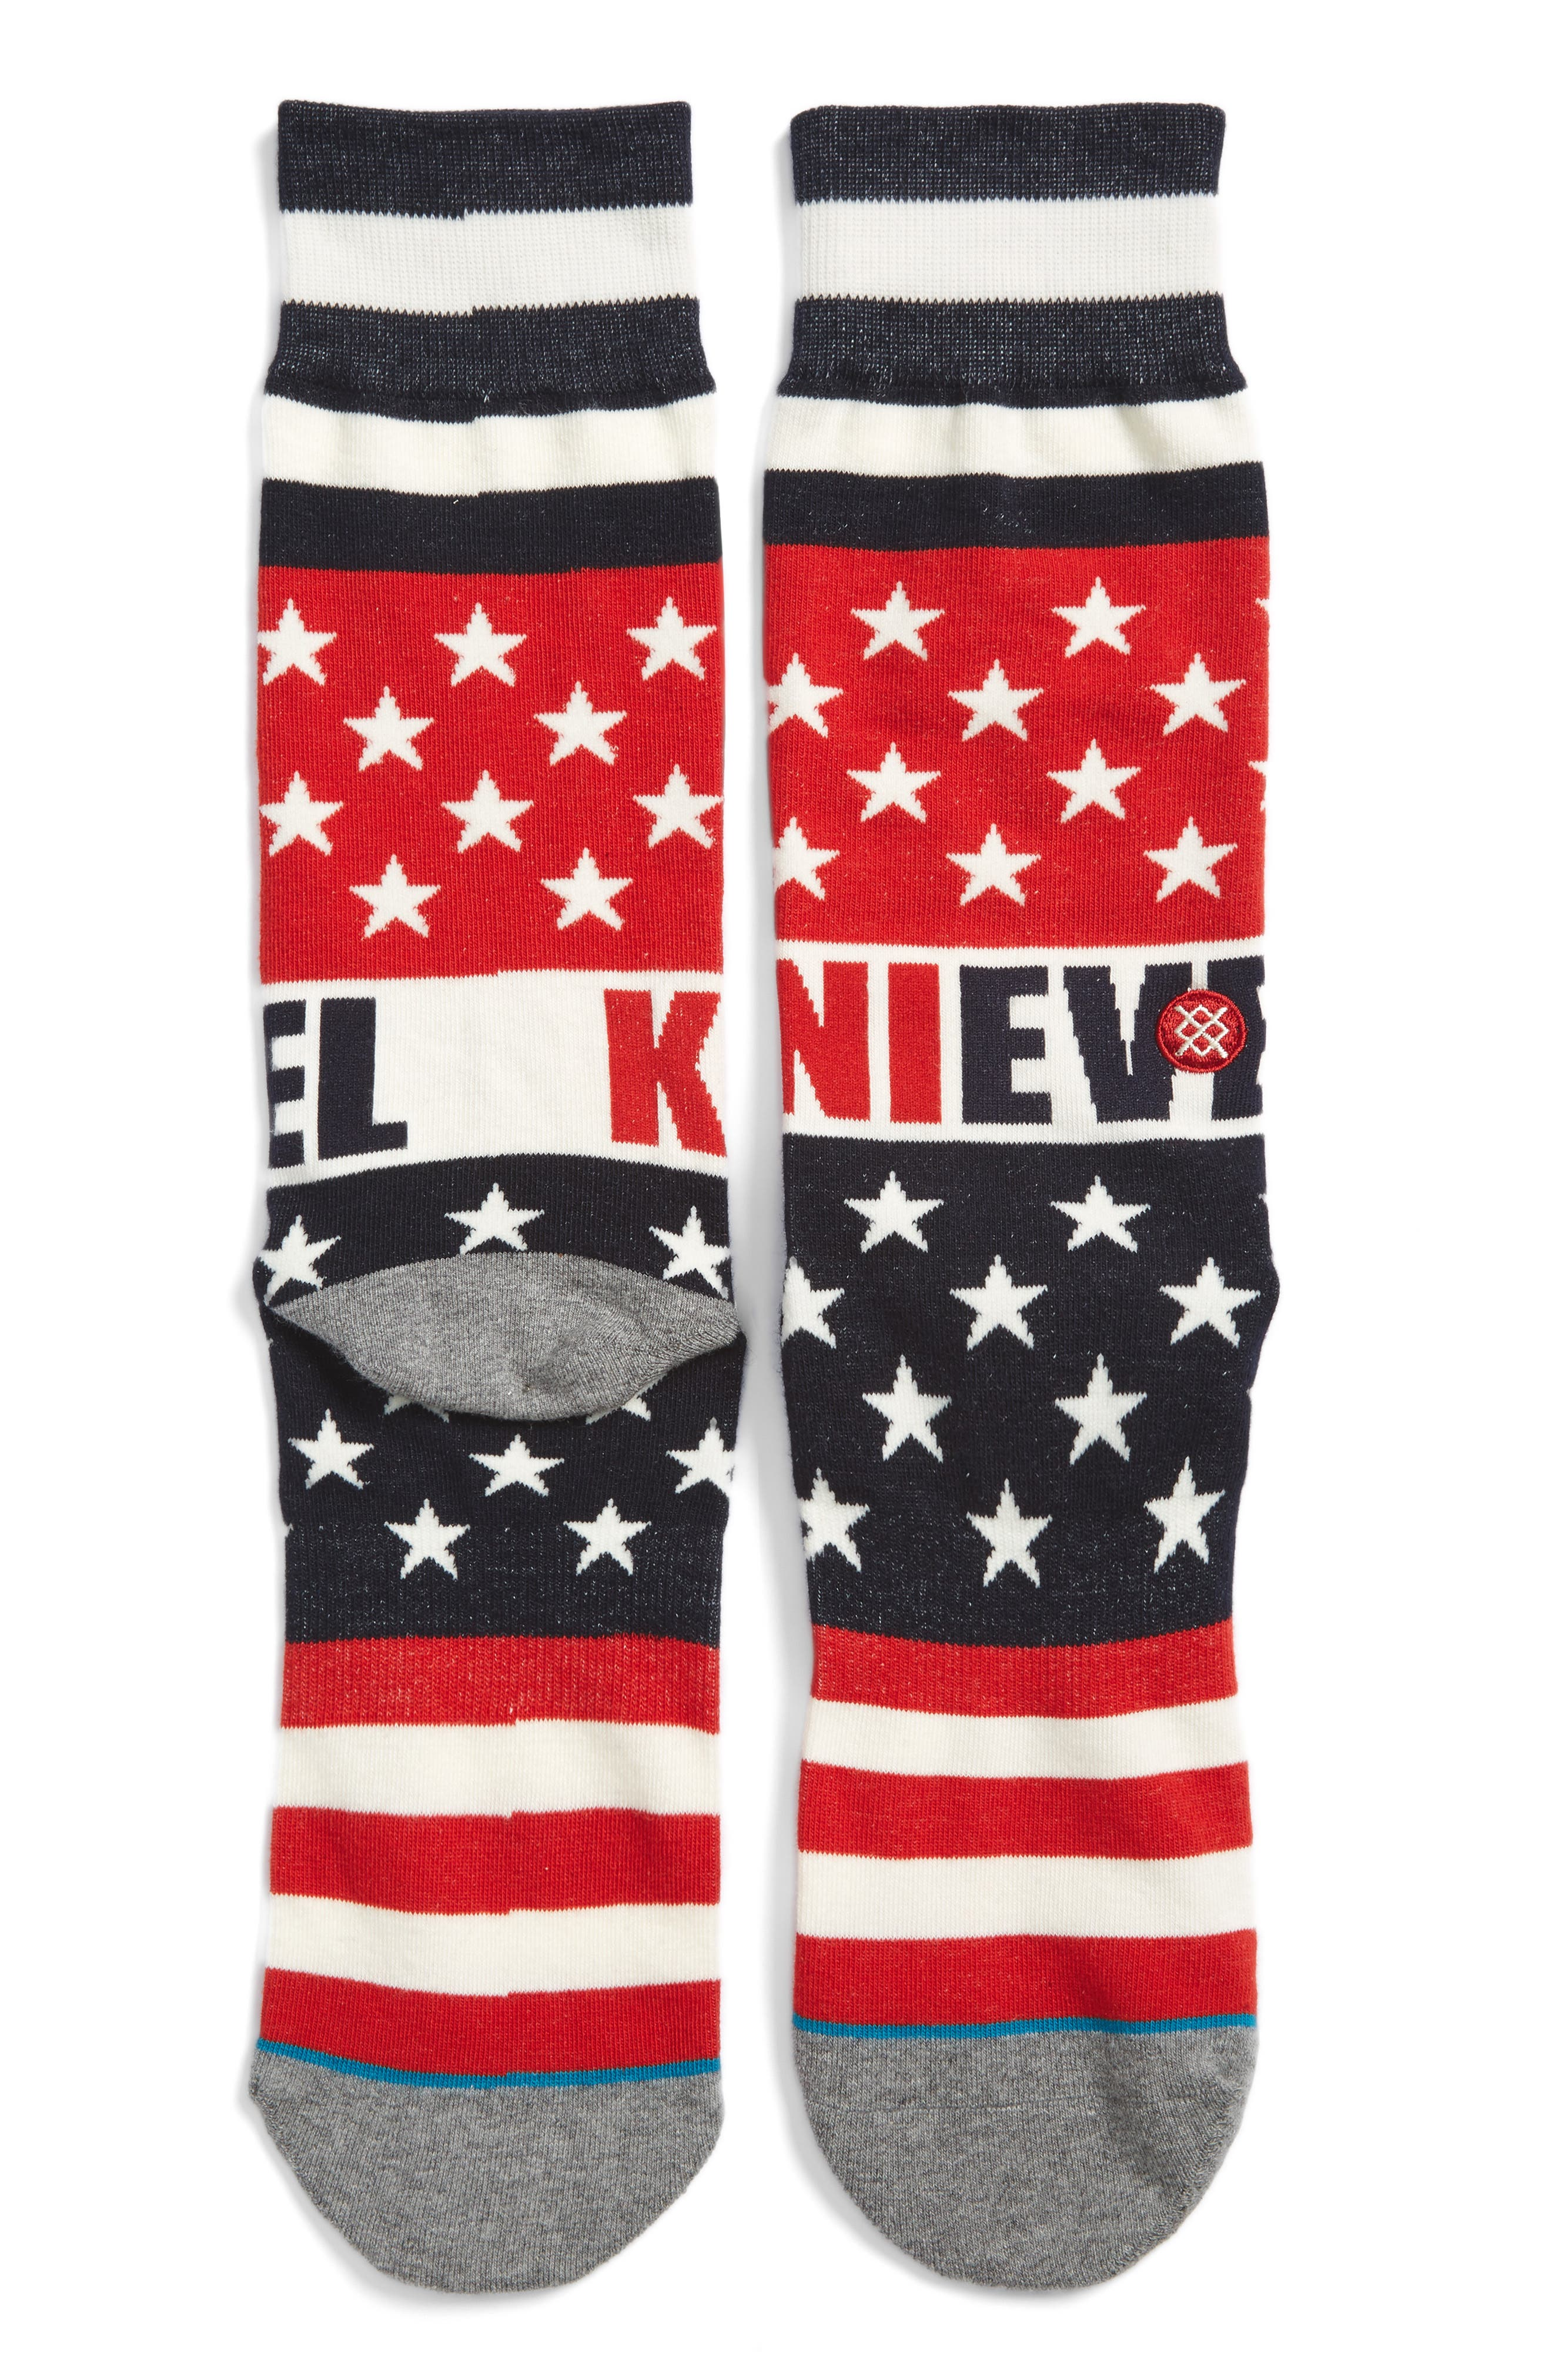 Alternate Image 1 Selected - Evel Knievel x Stance Gladiator Socks